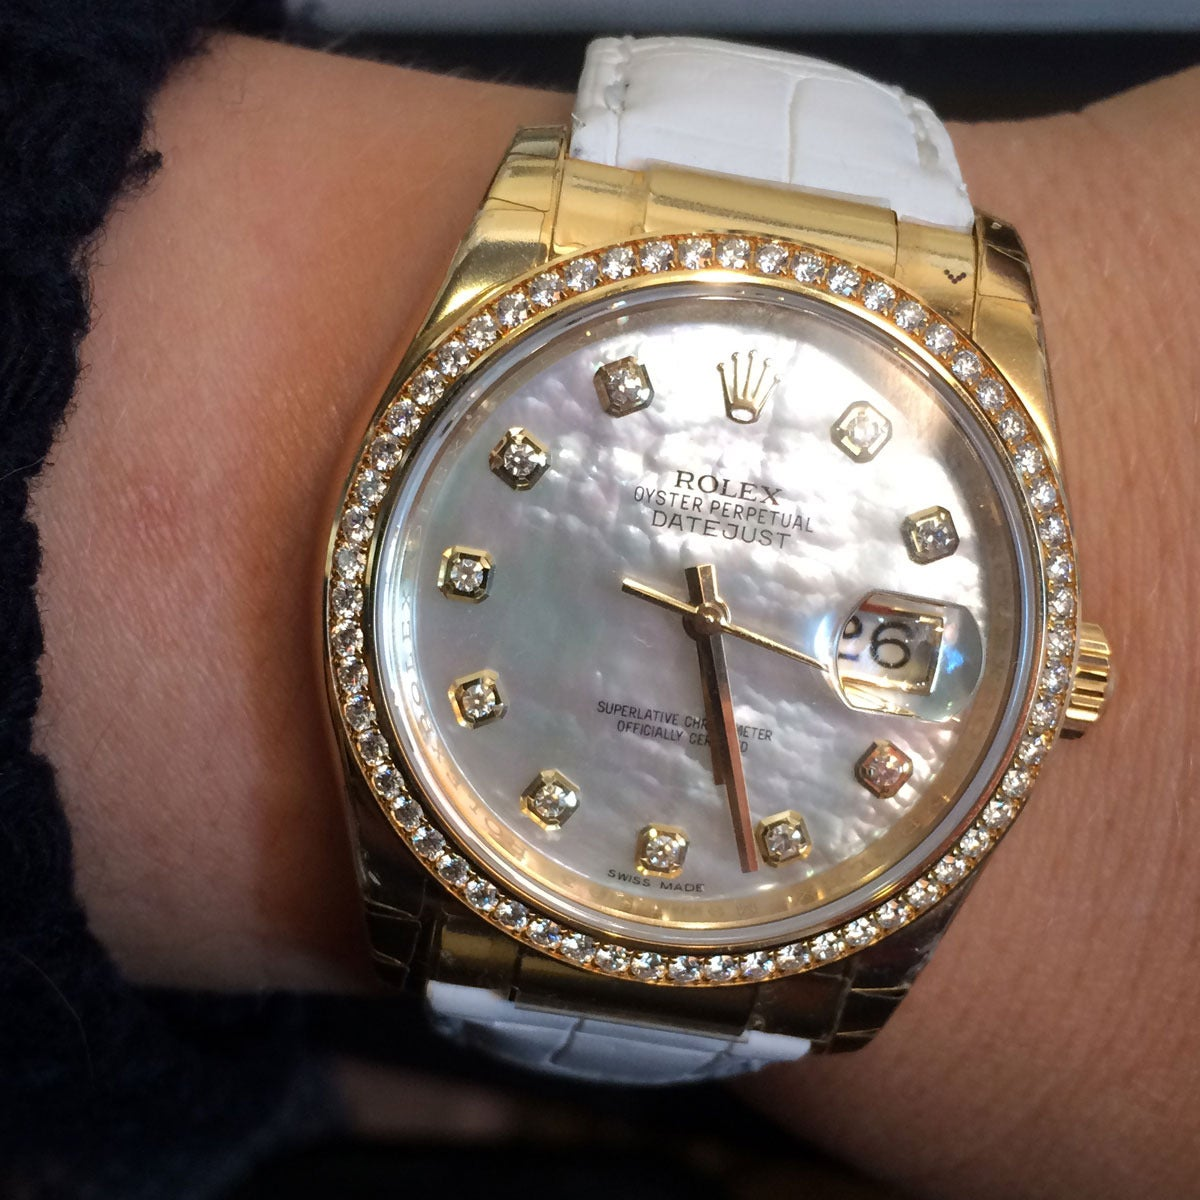 Rolex Yellow Gold Datejust Mother of Pearl Diamond Dial Wristwatch Ref 116188 9